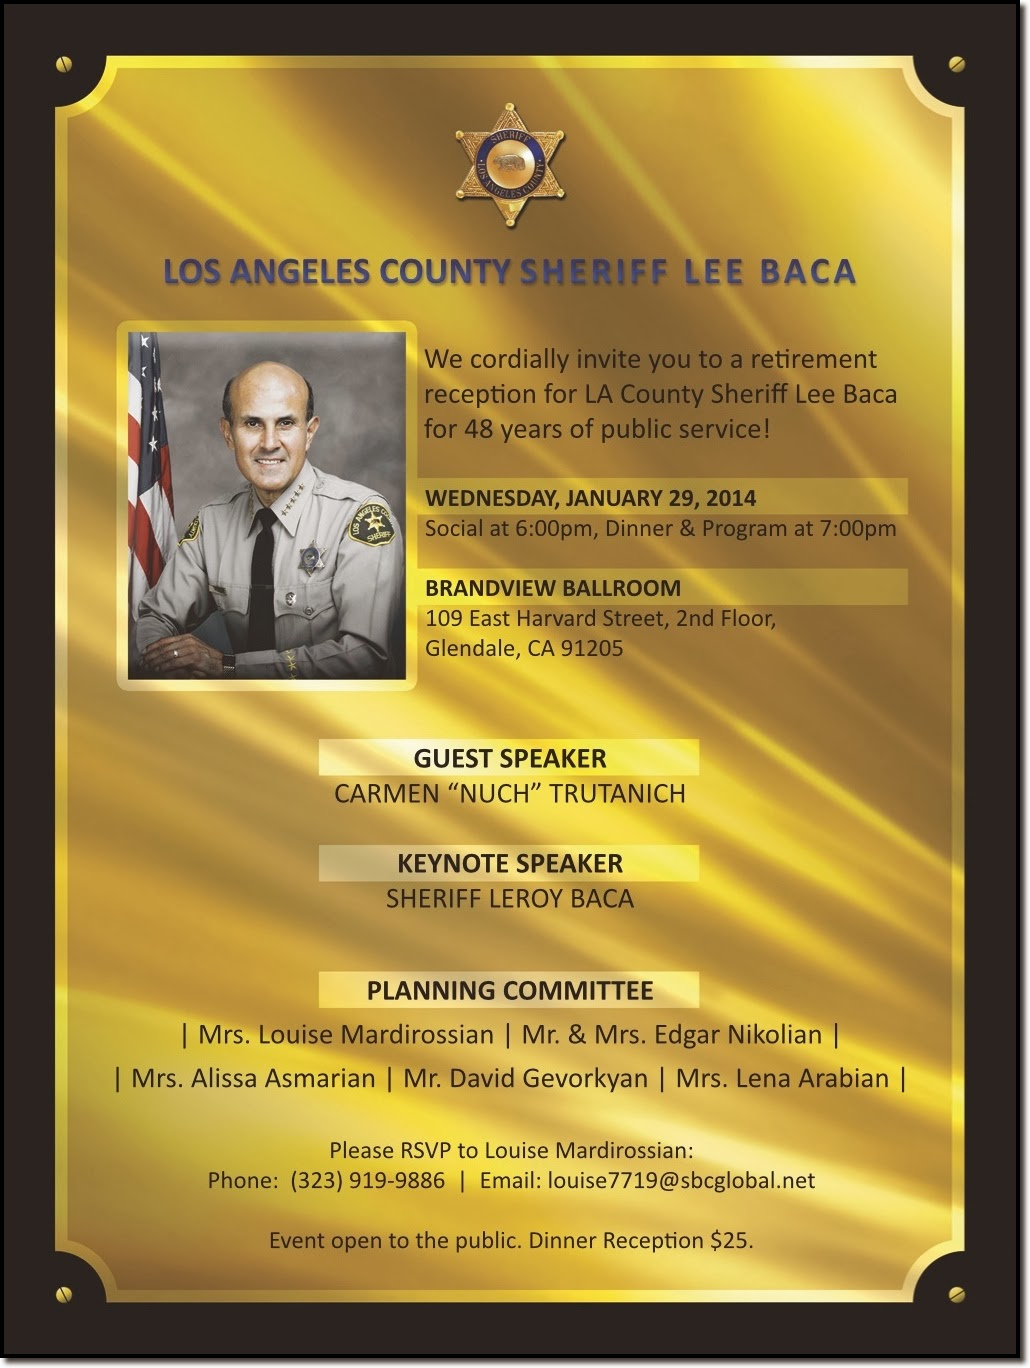 los angeles dragnet sheriff baca expect no apologies on retirement